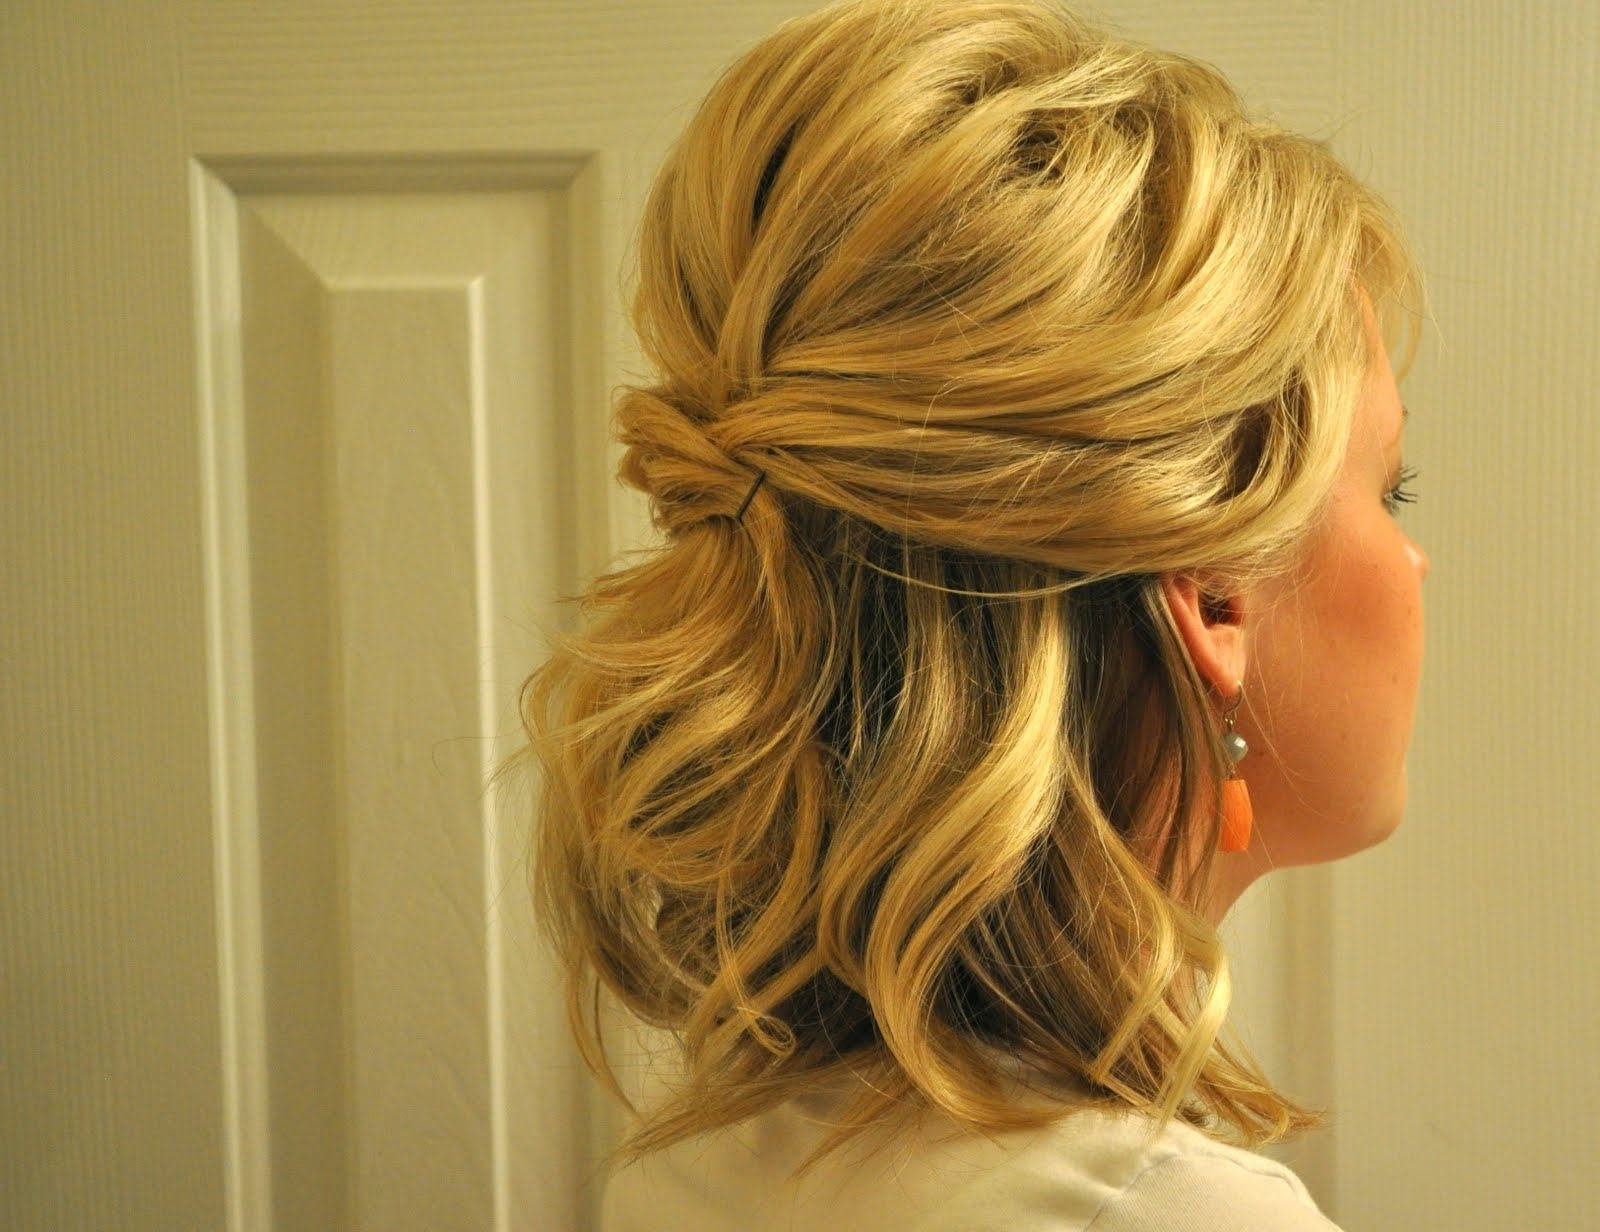 Half Up Half Down Side Wedding Hairstyles | Justswimfl In Partial Updos For Medium Hair (View 7 of 15)